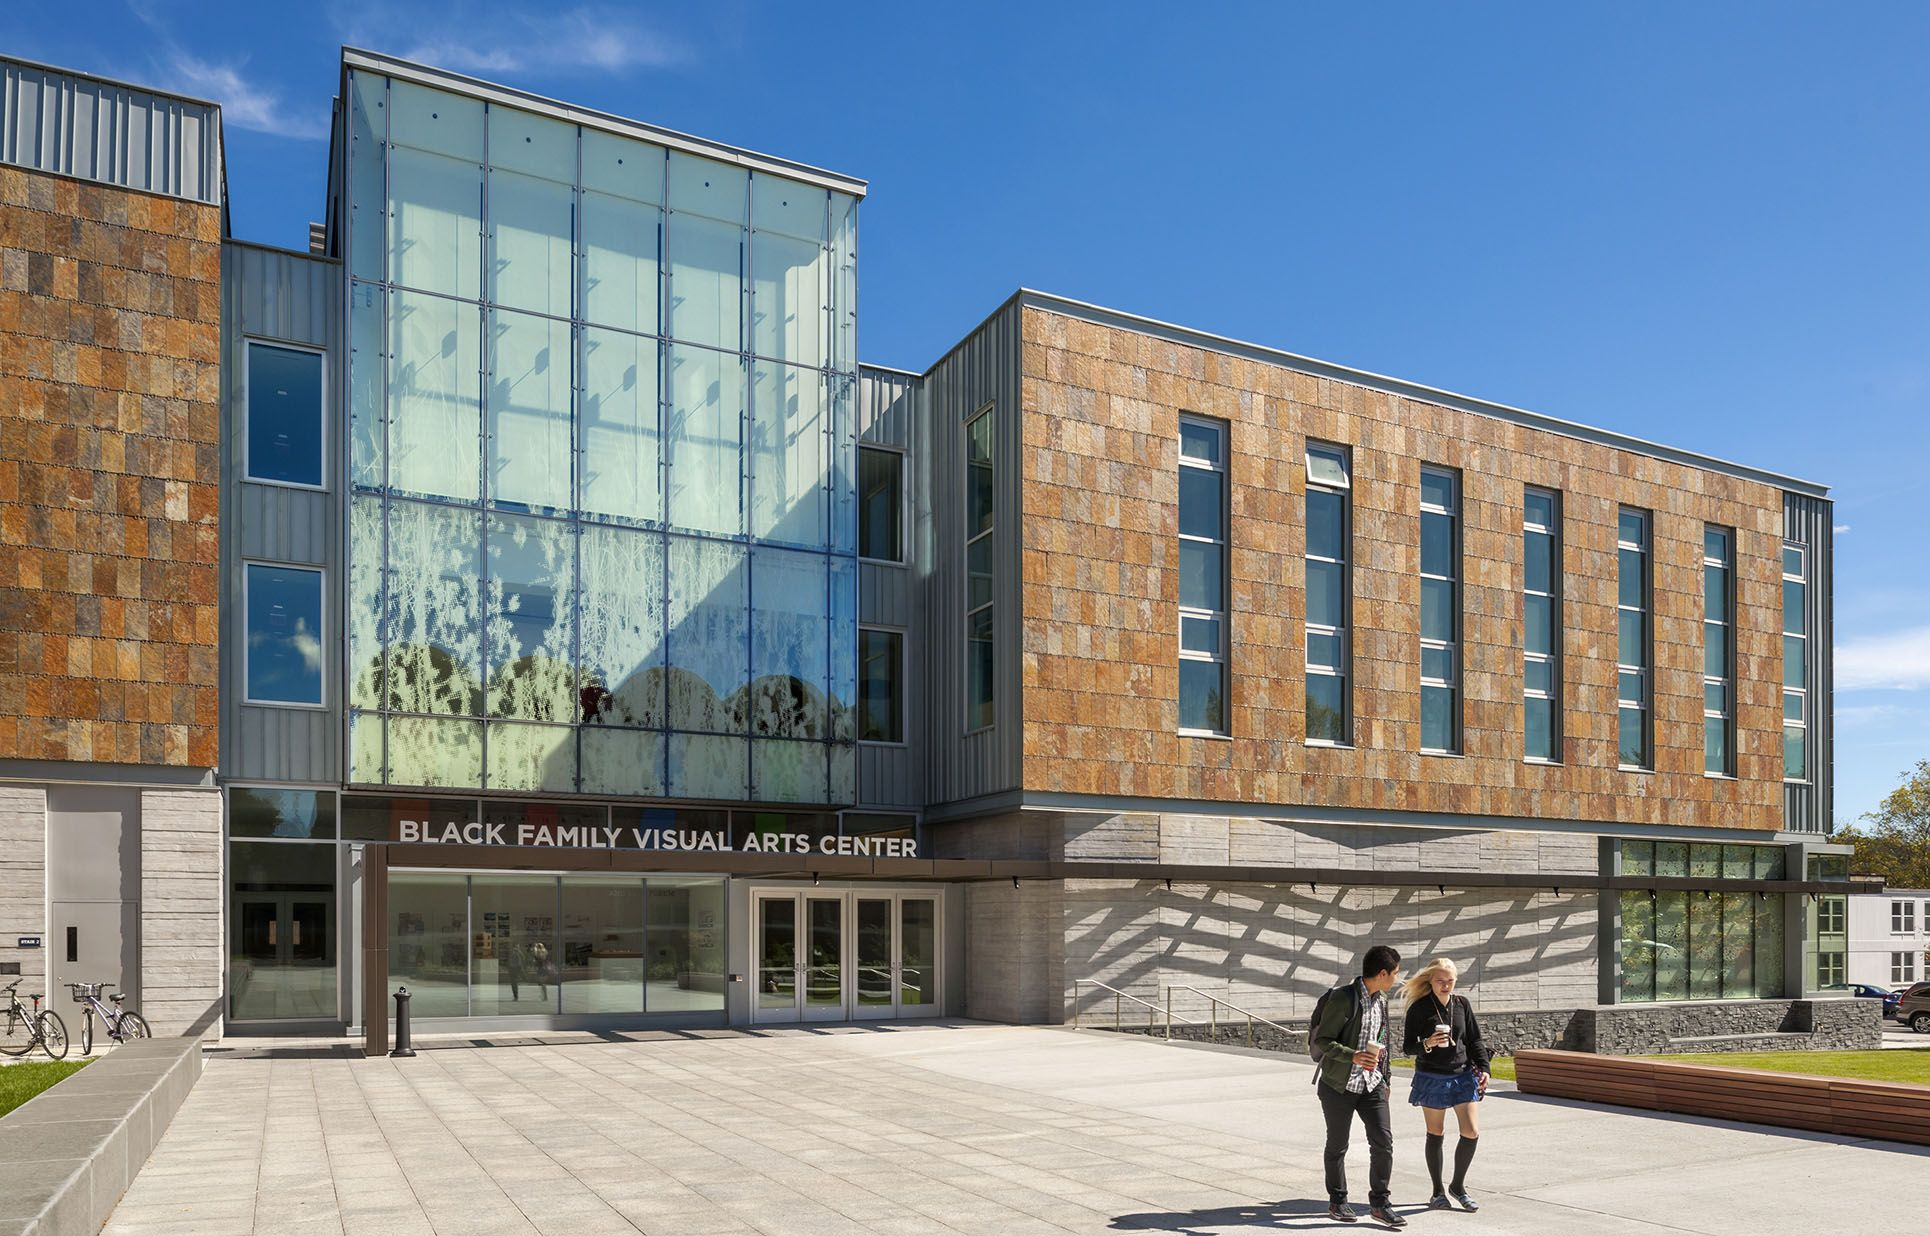 Dartmouth college black family visual arts center with